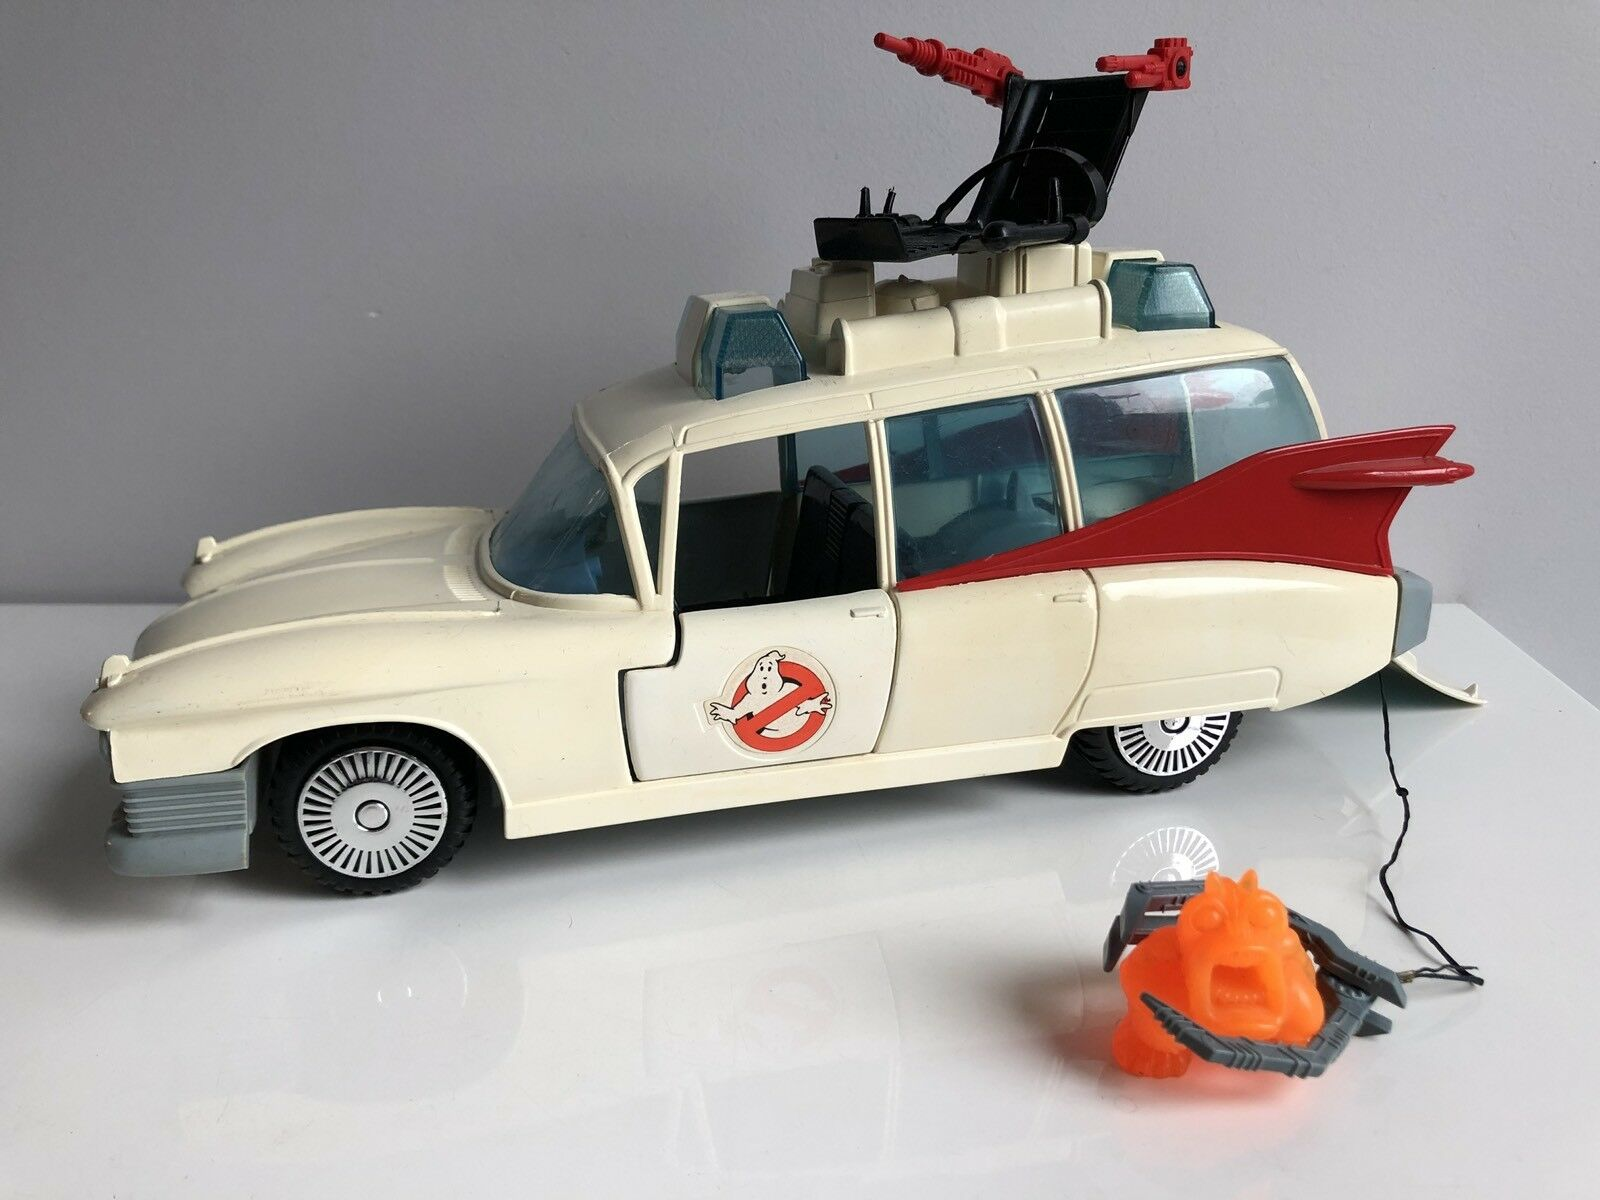 Ghostbusters Ecto 1 Ecto-1 100% Complete Working C8  2